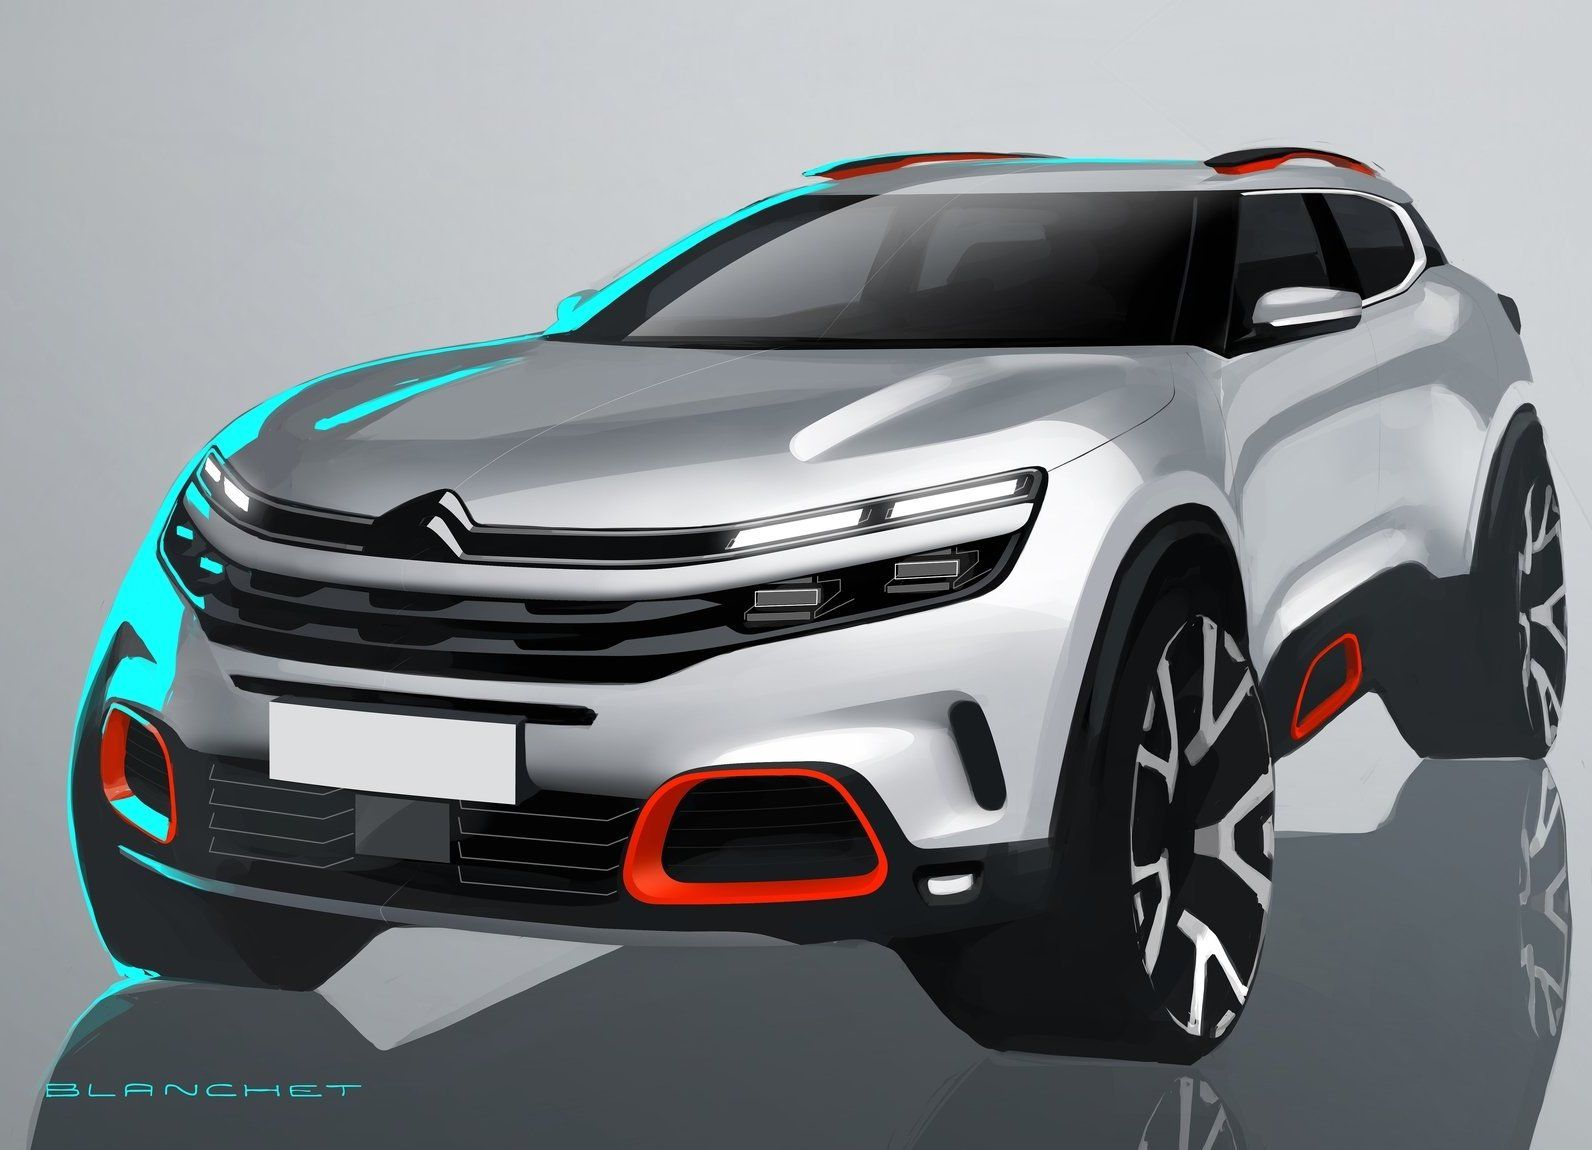 Citroen Working On 4 Products For The Indian Market – Report